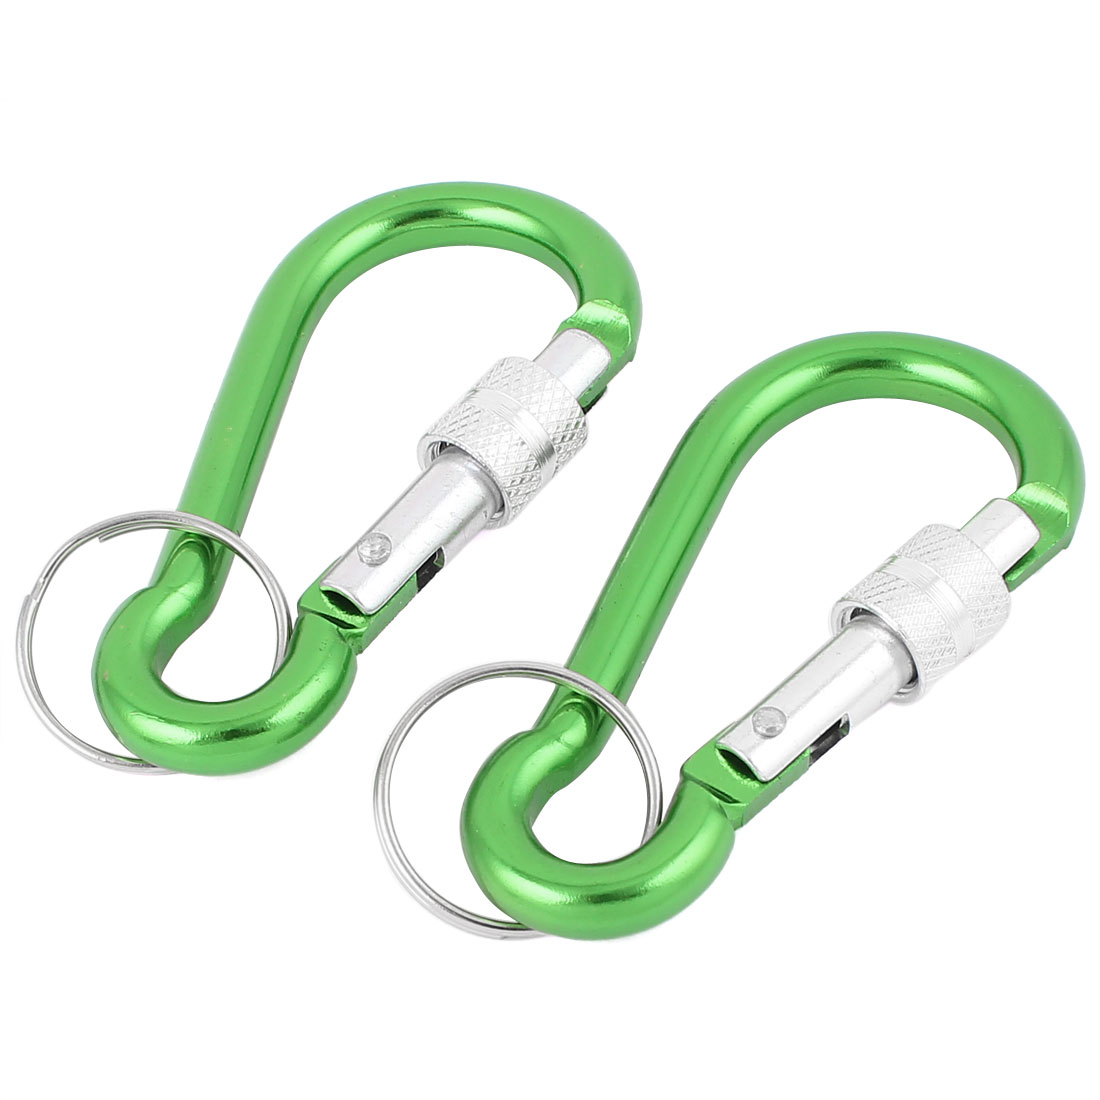 Camping Hiking Keyring Carabiner Clip Sping Snap Hook Karabiner Green 2pcs